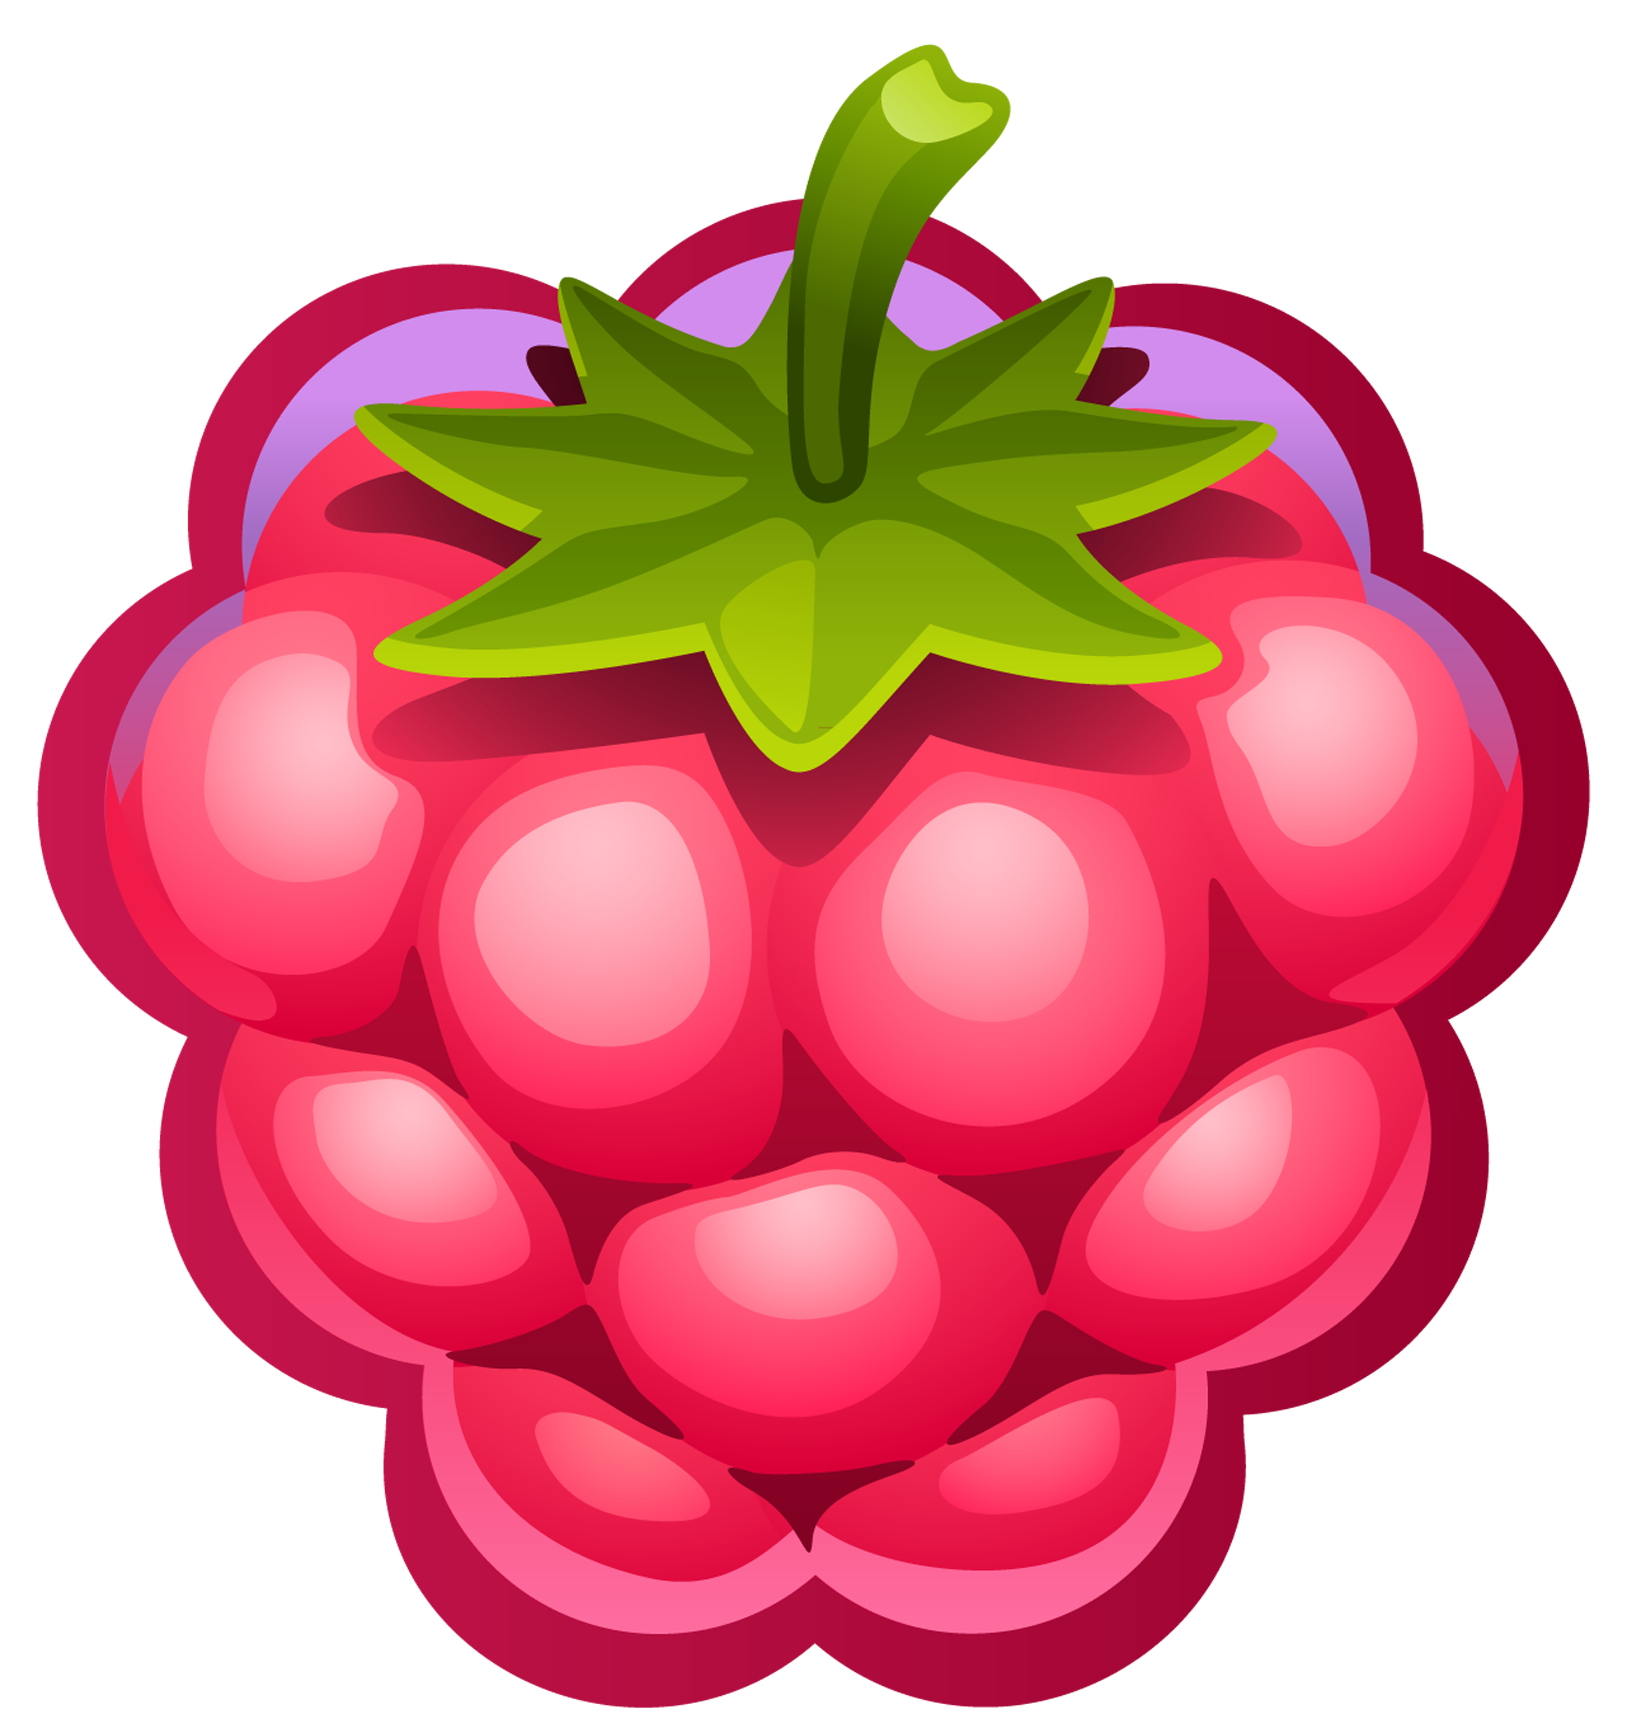 Raspberry clipart #5, Download drawings